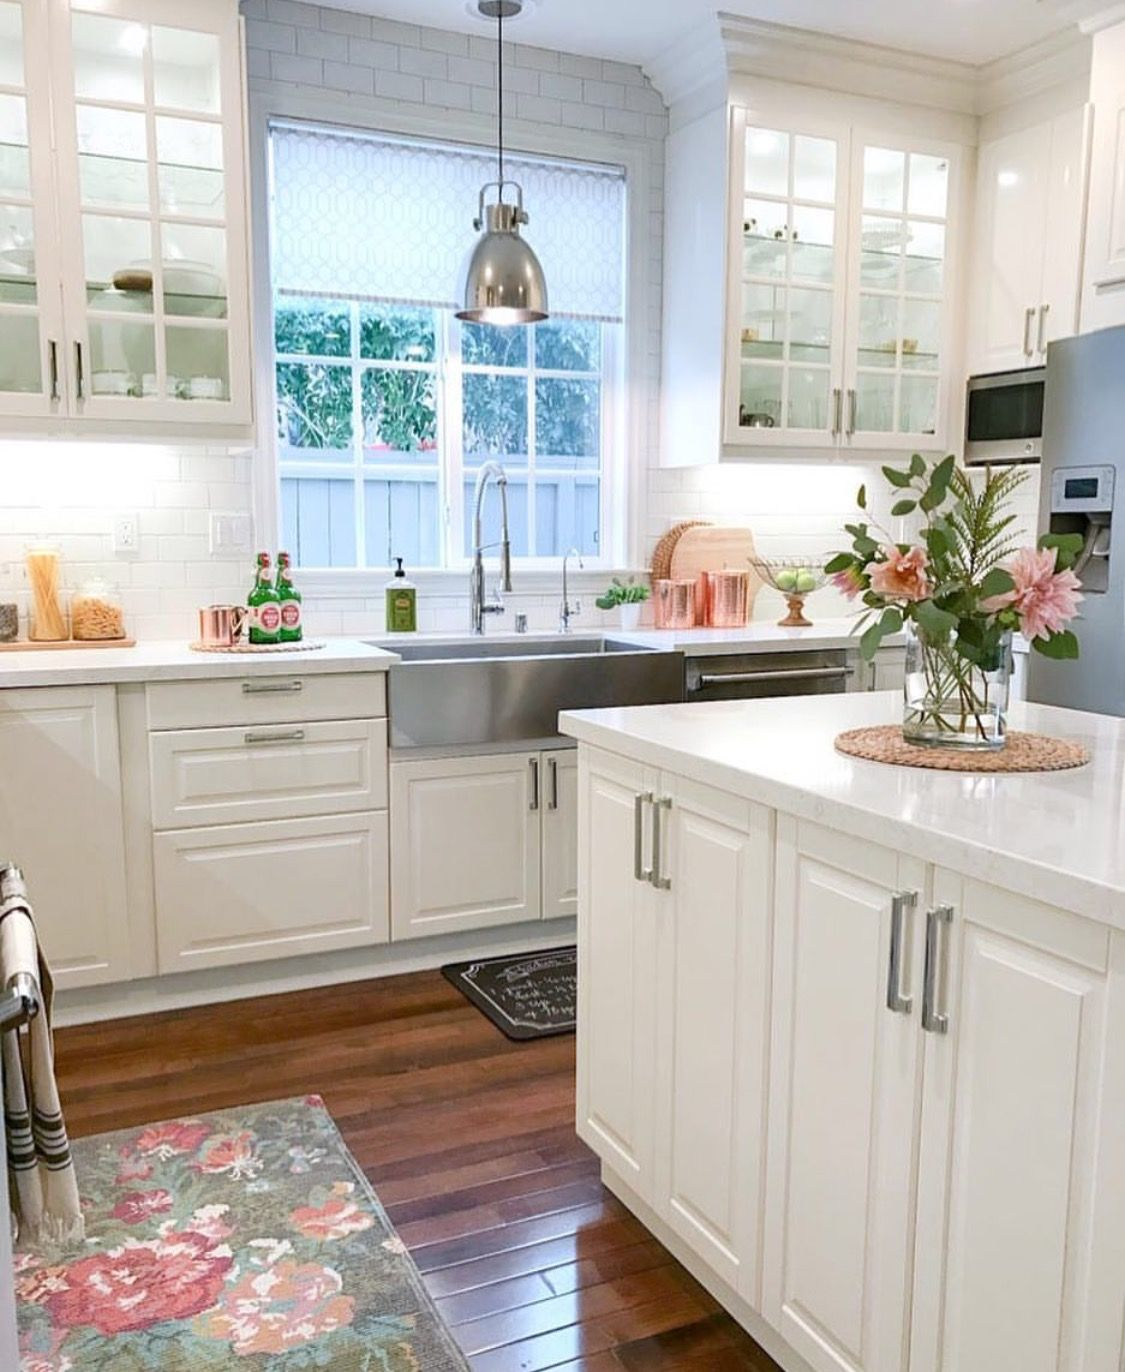 Ikea Kitchen Galley: Pin By Sylvia David On Dream Home